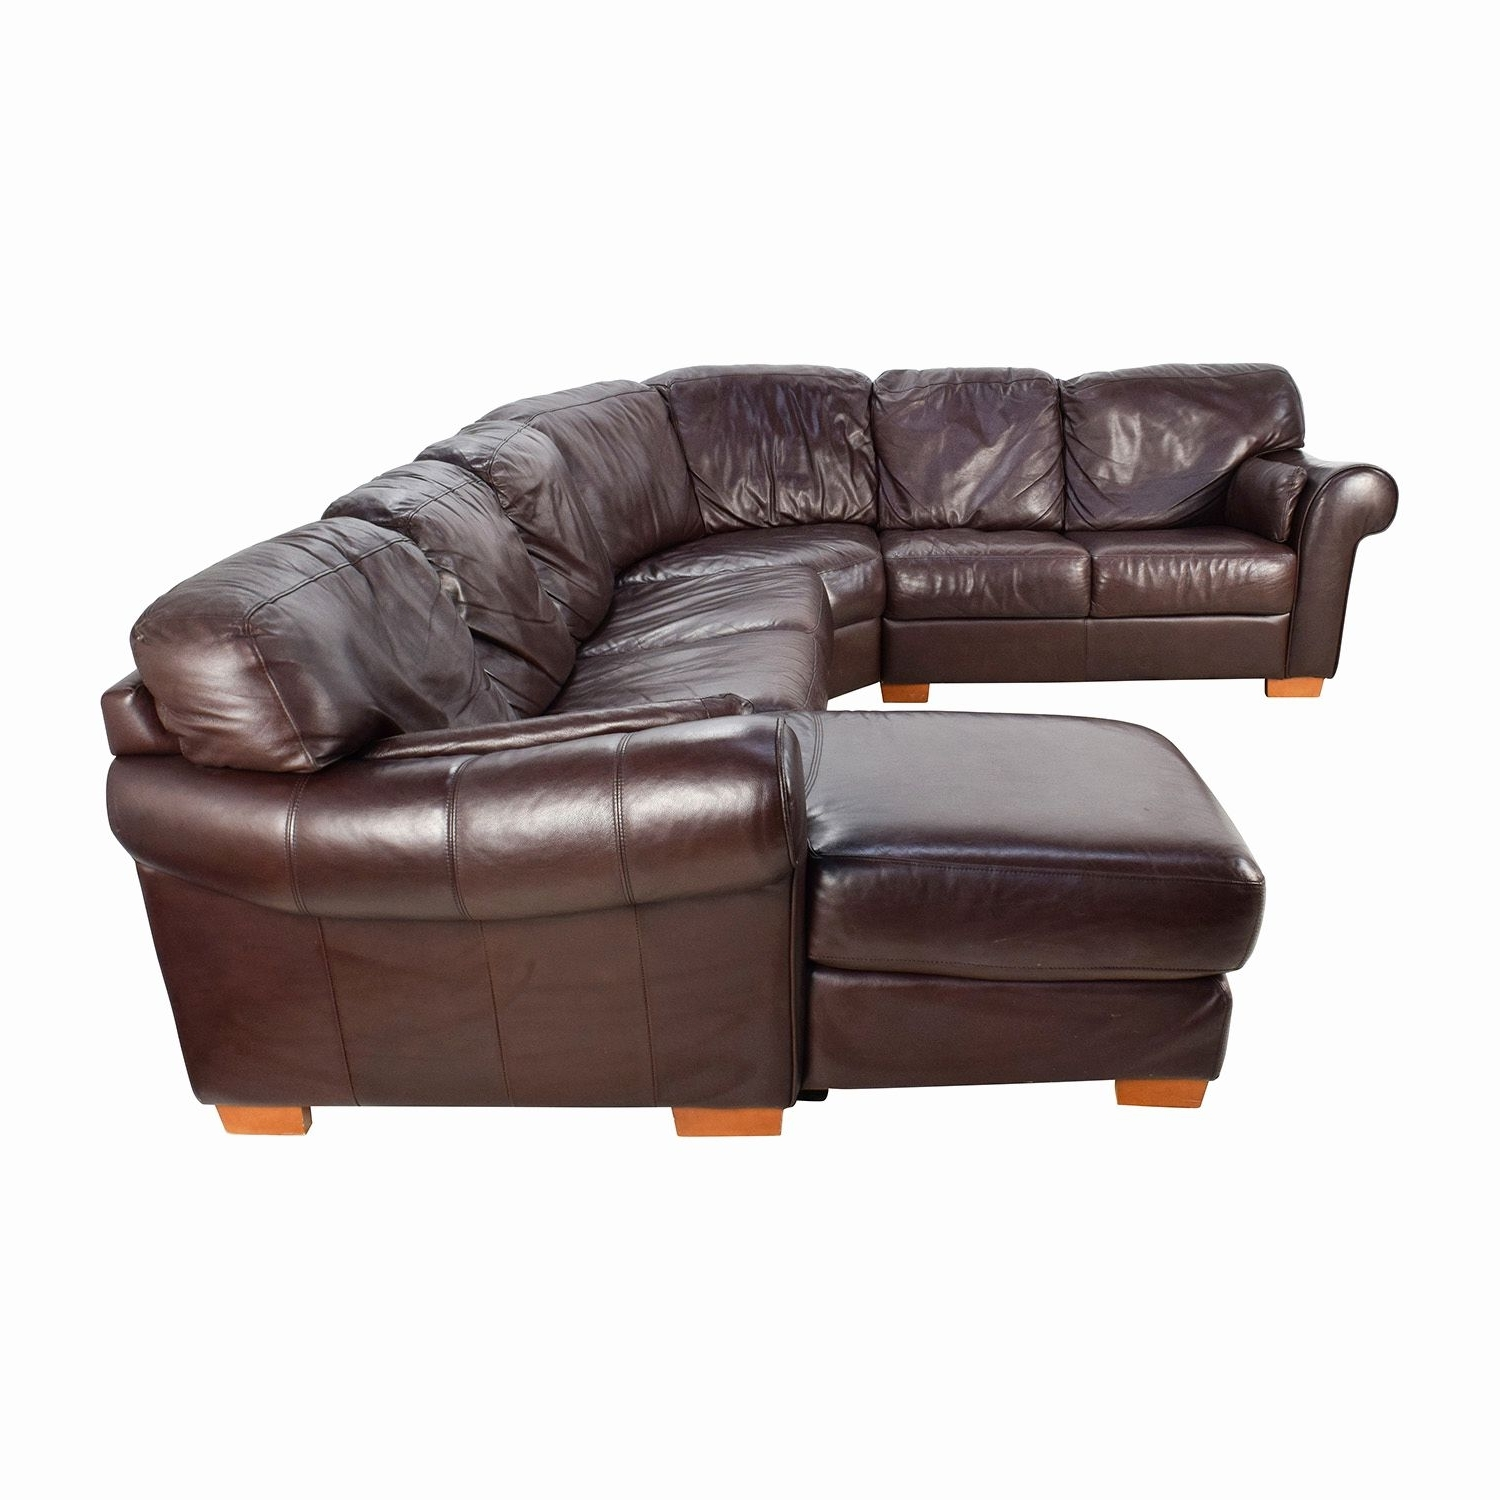 Most Popular Appealing Raymour And Flanigan Sectional Sofas U Couches For Chair Inside Sectional Sofas At Raymour And Flanigan (View 10 of 15)